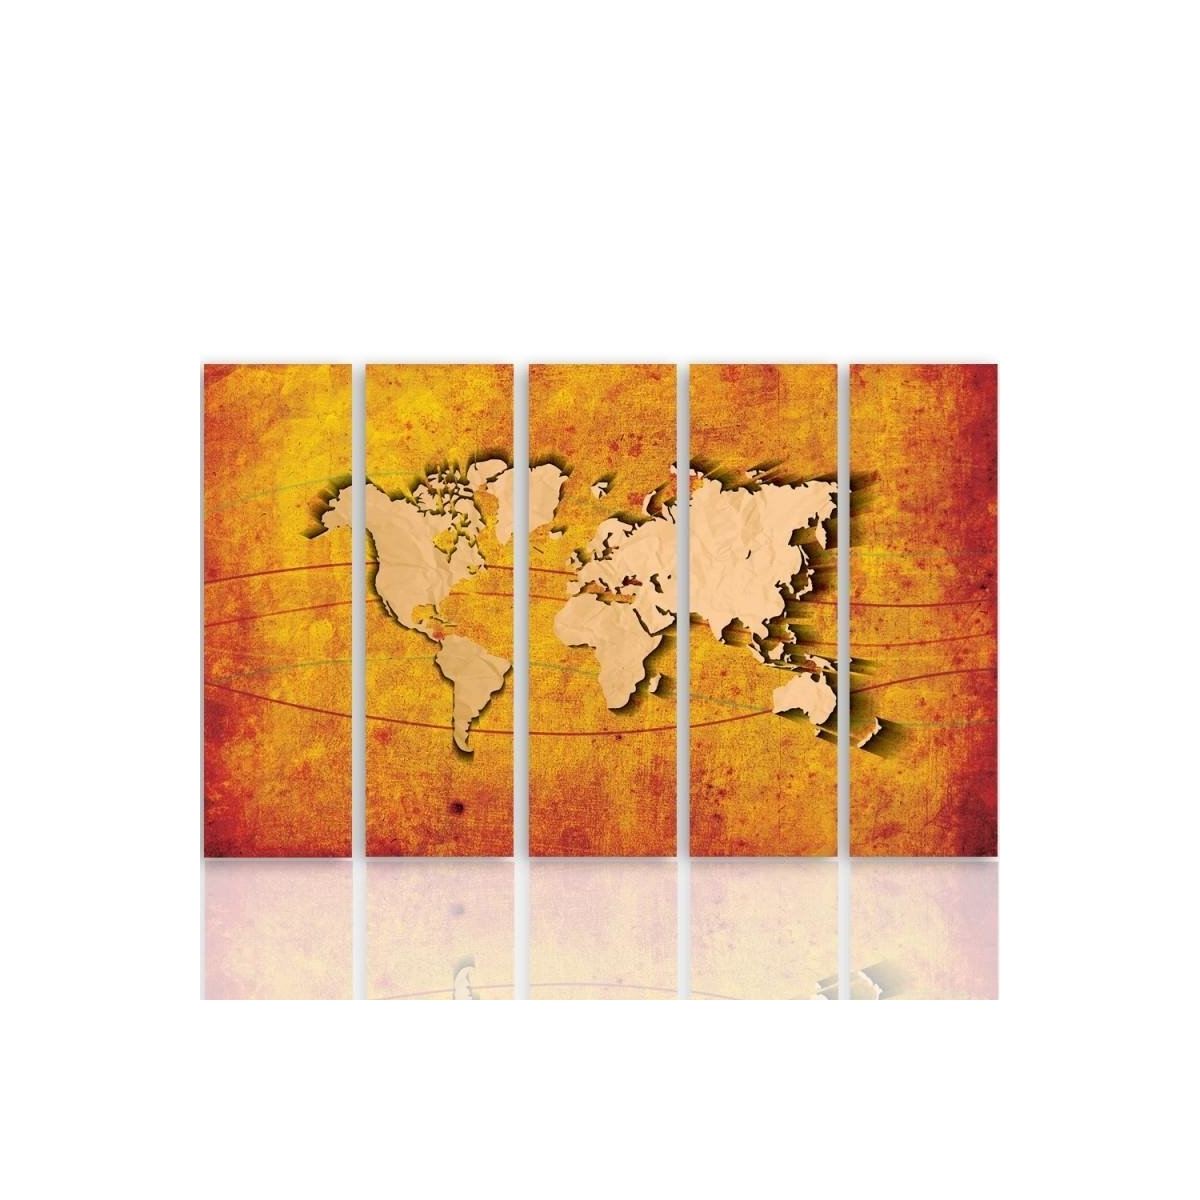 Five Part Picture On Canvas, Pentaptych, Type C, Orange Map Of The World 100x150